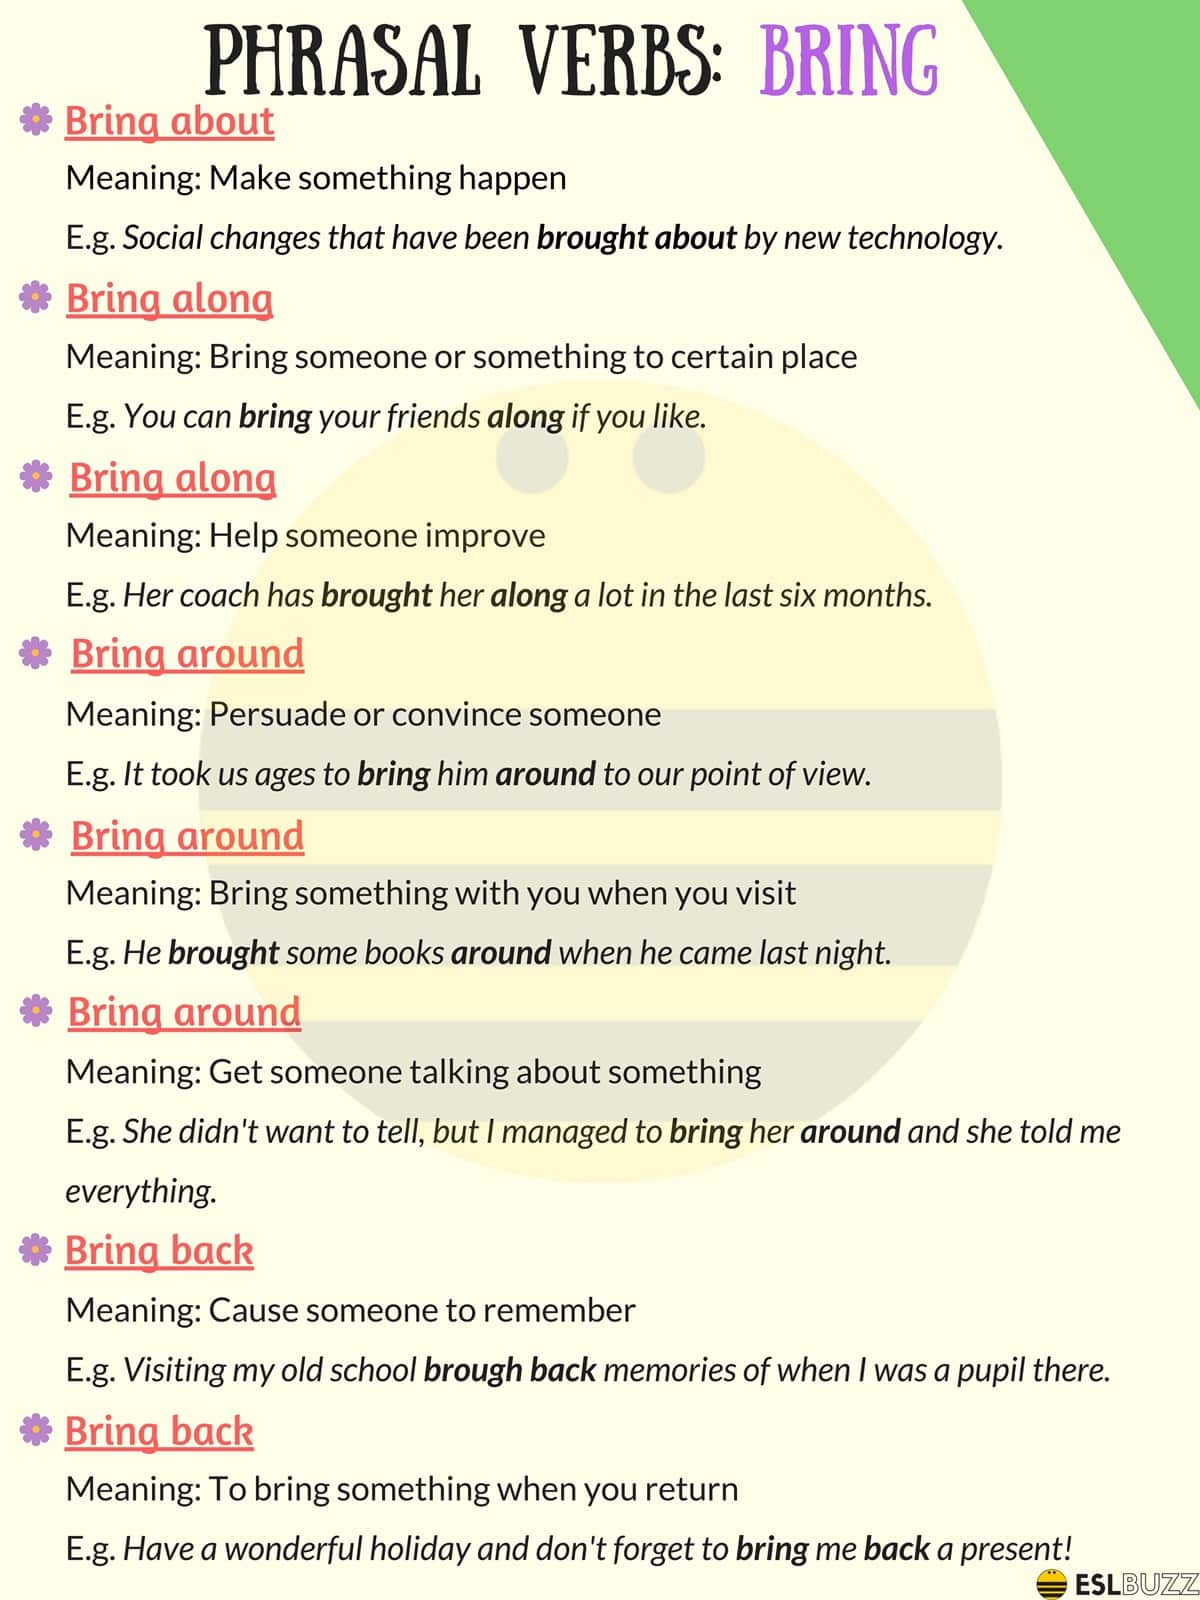 100+ of the Most Useful Phrasal Verbs in English (With Meaning & Examples) 10